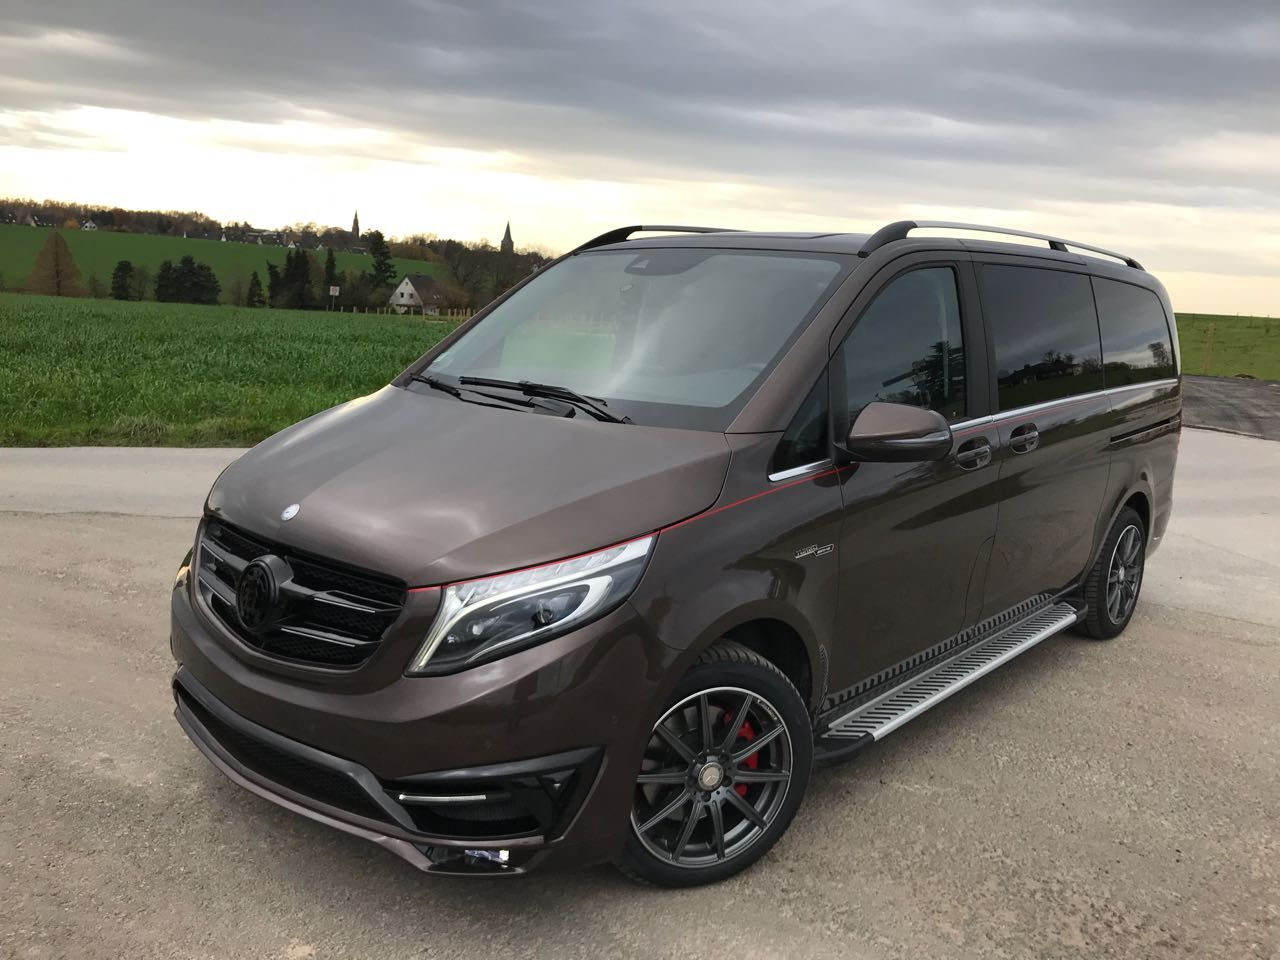 Mercedes V Class With Black Crystal Tuning Package By LARTE Design